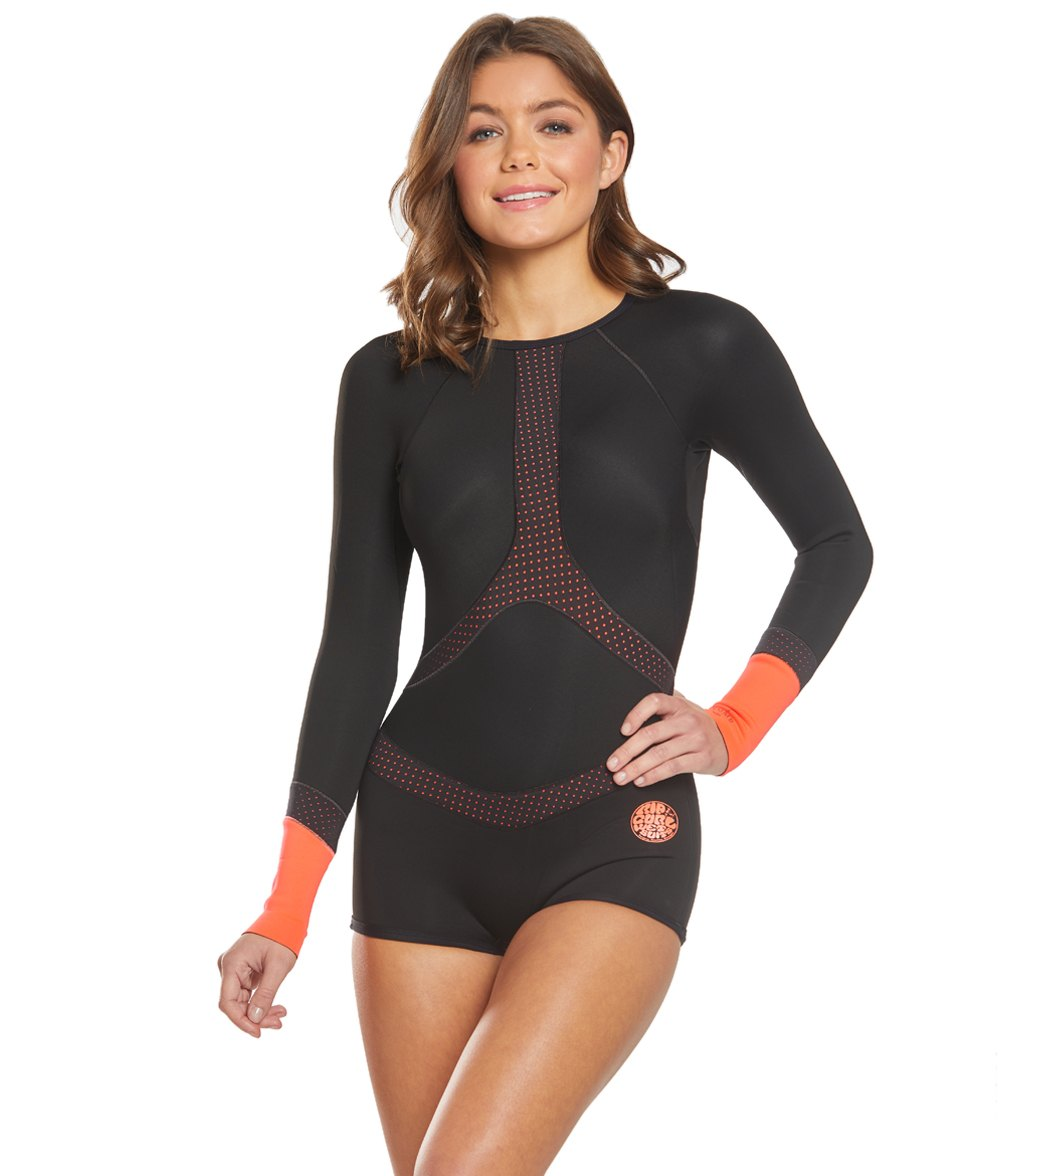 b14e67f6a5e9 Rip Curl Women s 1mm G-Bomb Madison Long Sleeve Boyleg Spring Suit Wetsuit  at SwimOutlet.com - Free Shipping